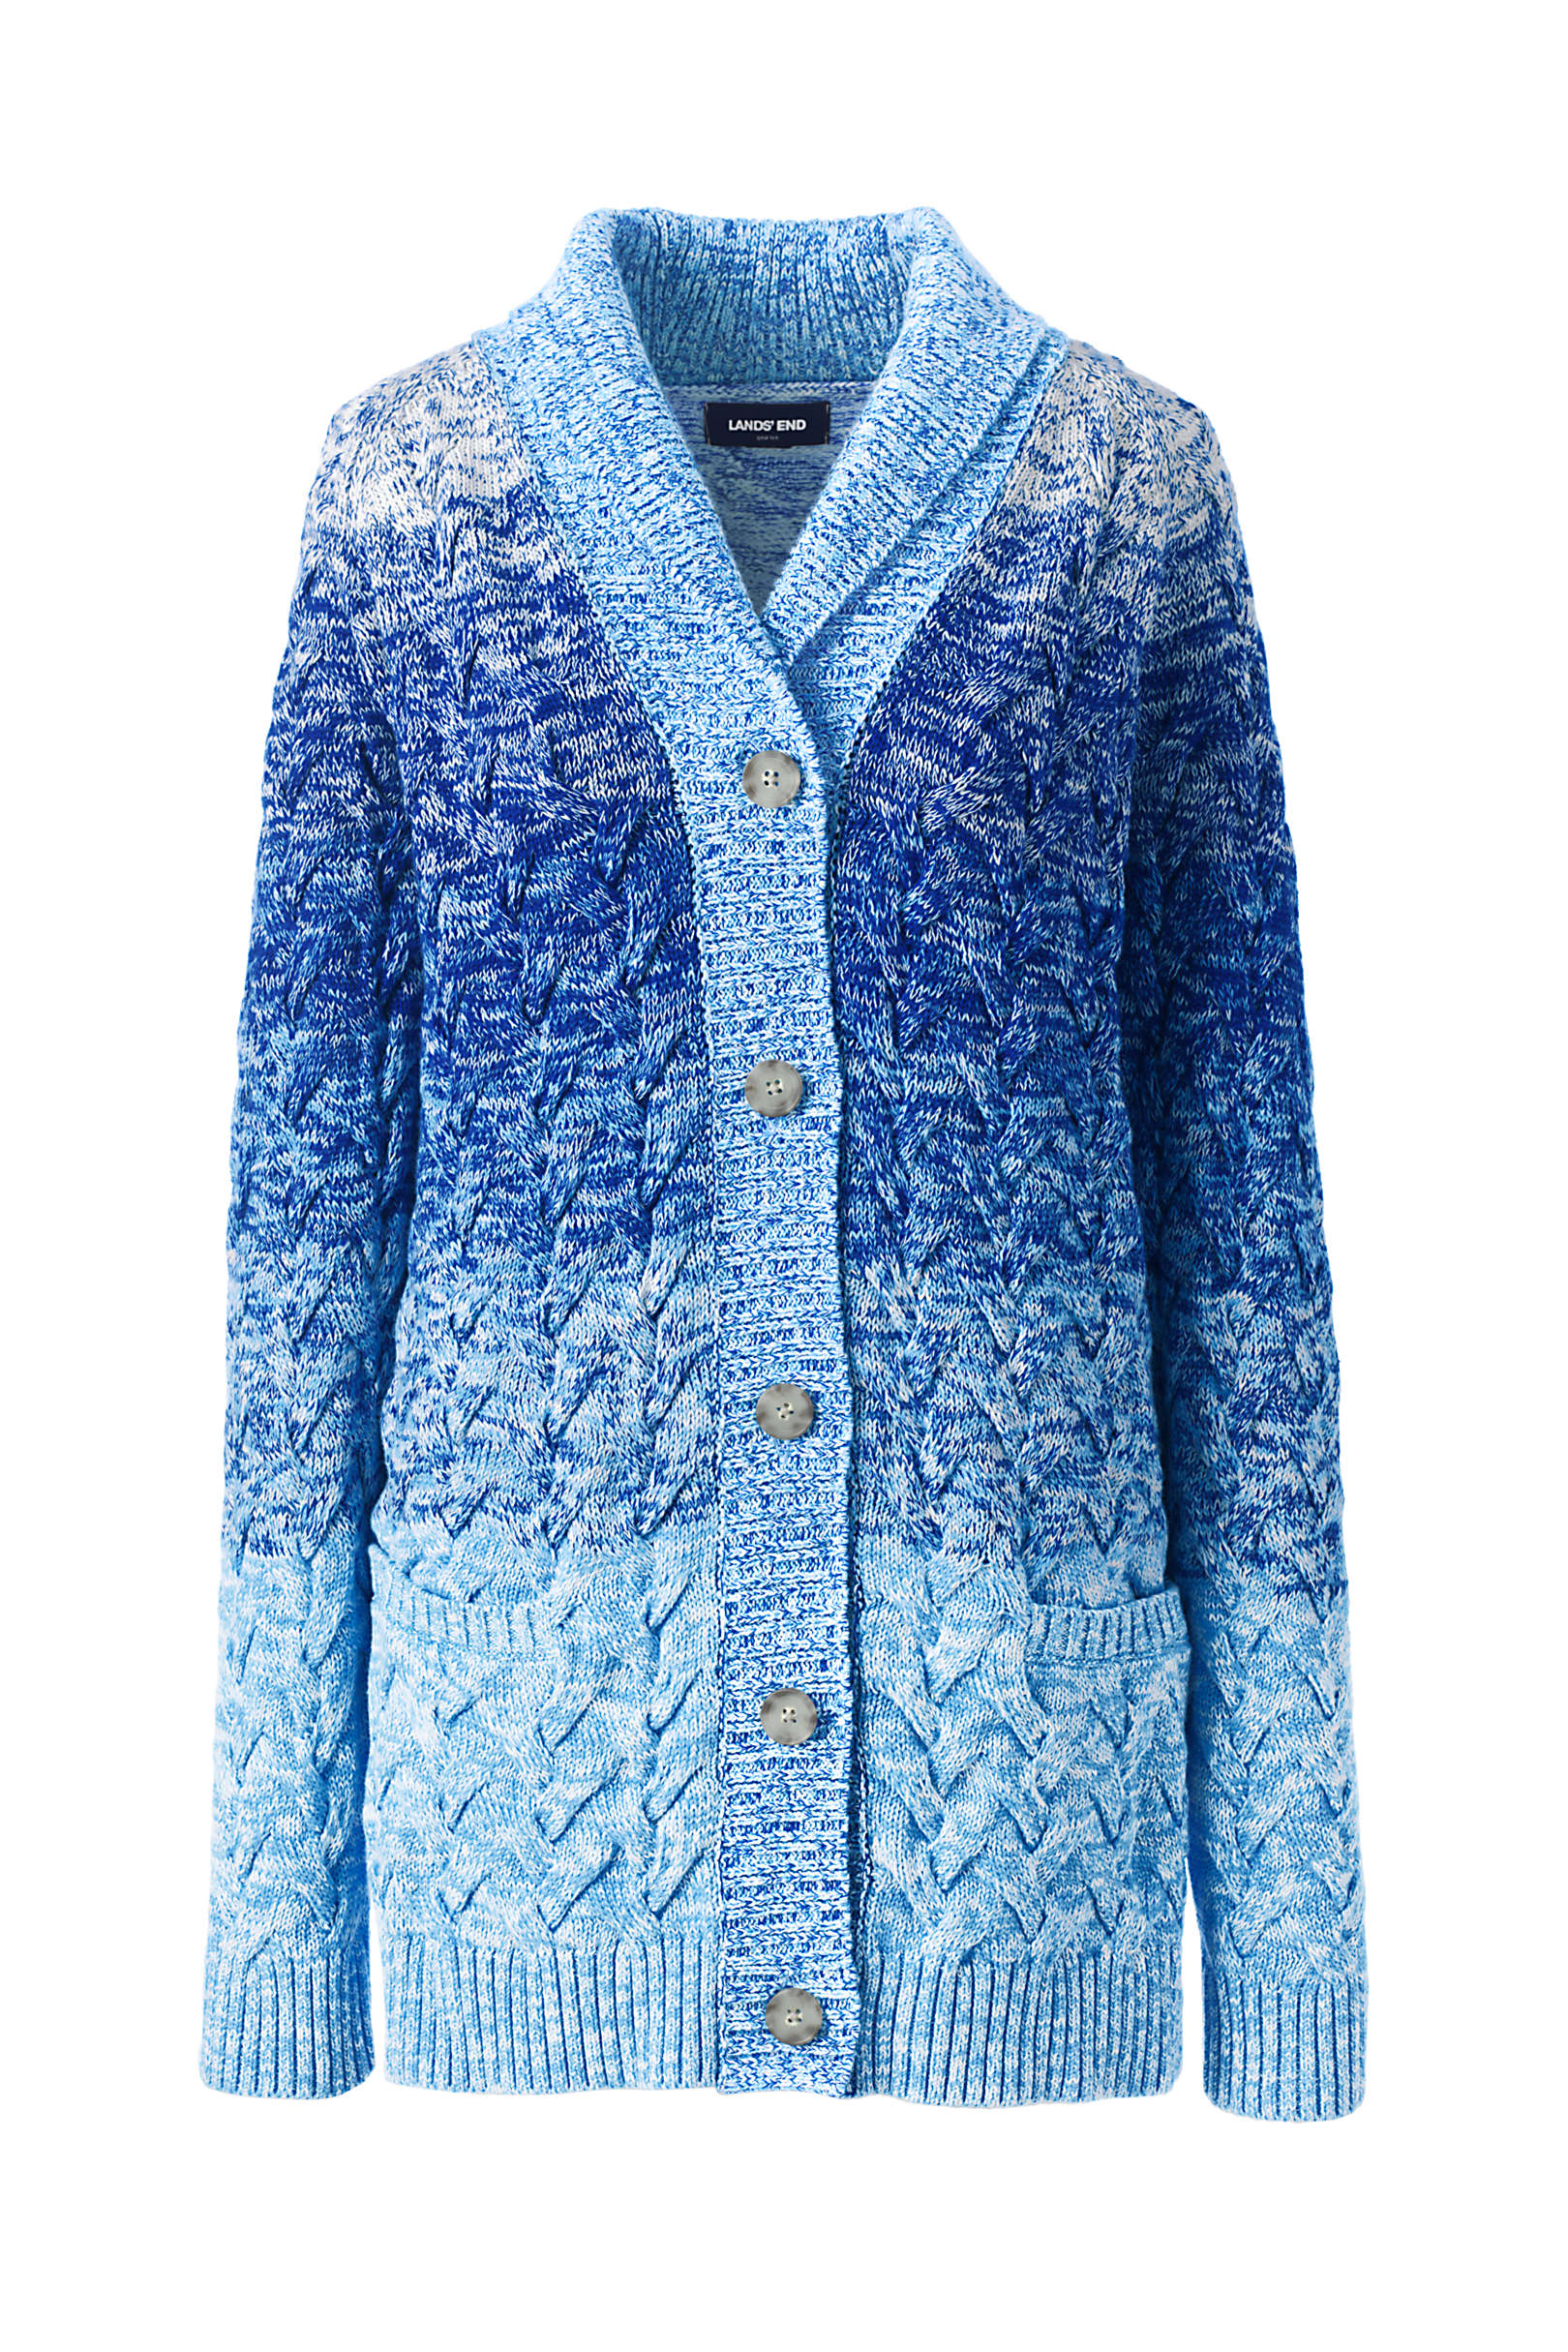 Women's Cotton Cable Drifter Shawl Cardigan Sweater, WAS $89.95, ON SALE FOR $44.97 @Landsend.com